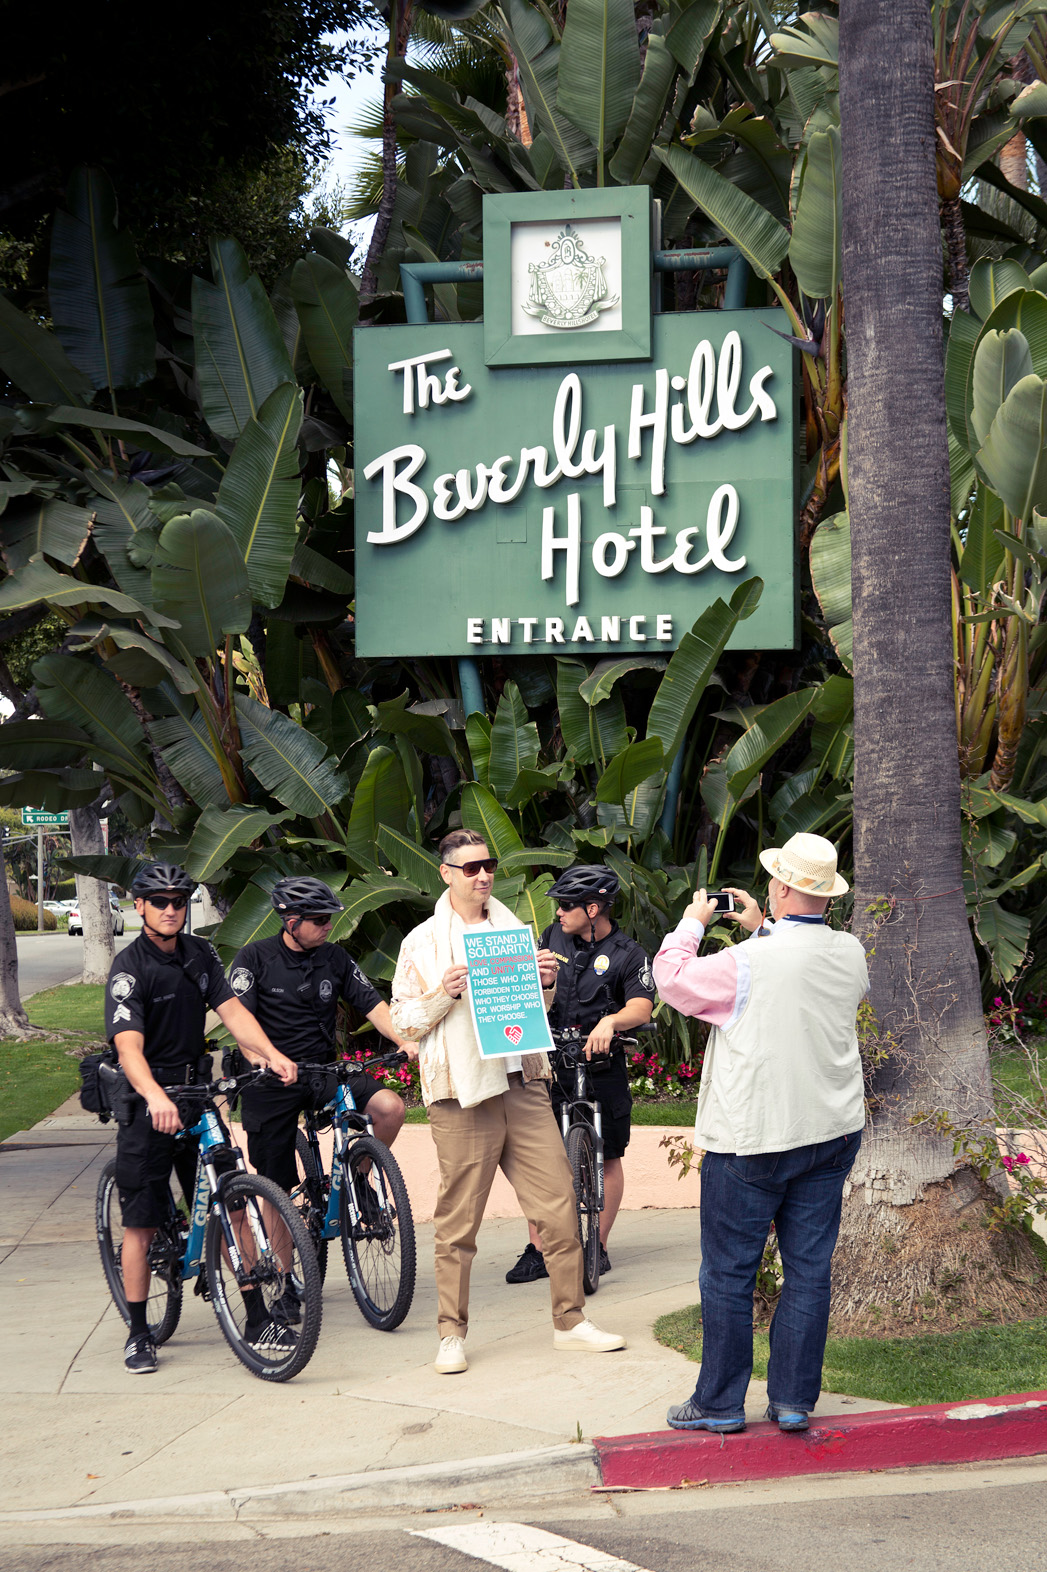 Beverly Hills Hotel Protest Protester Posing With Police - P 2014